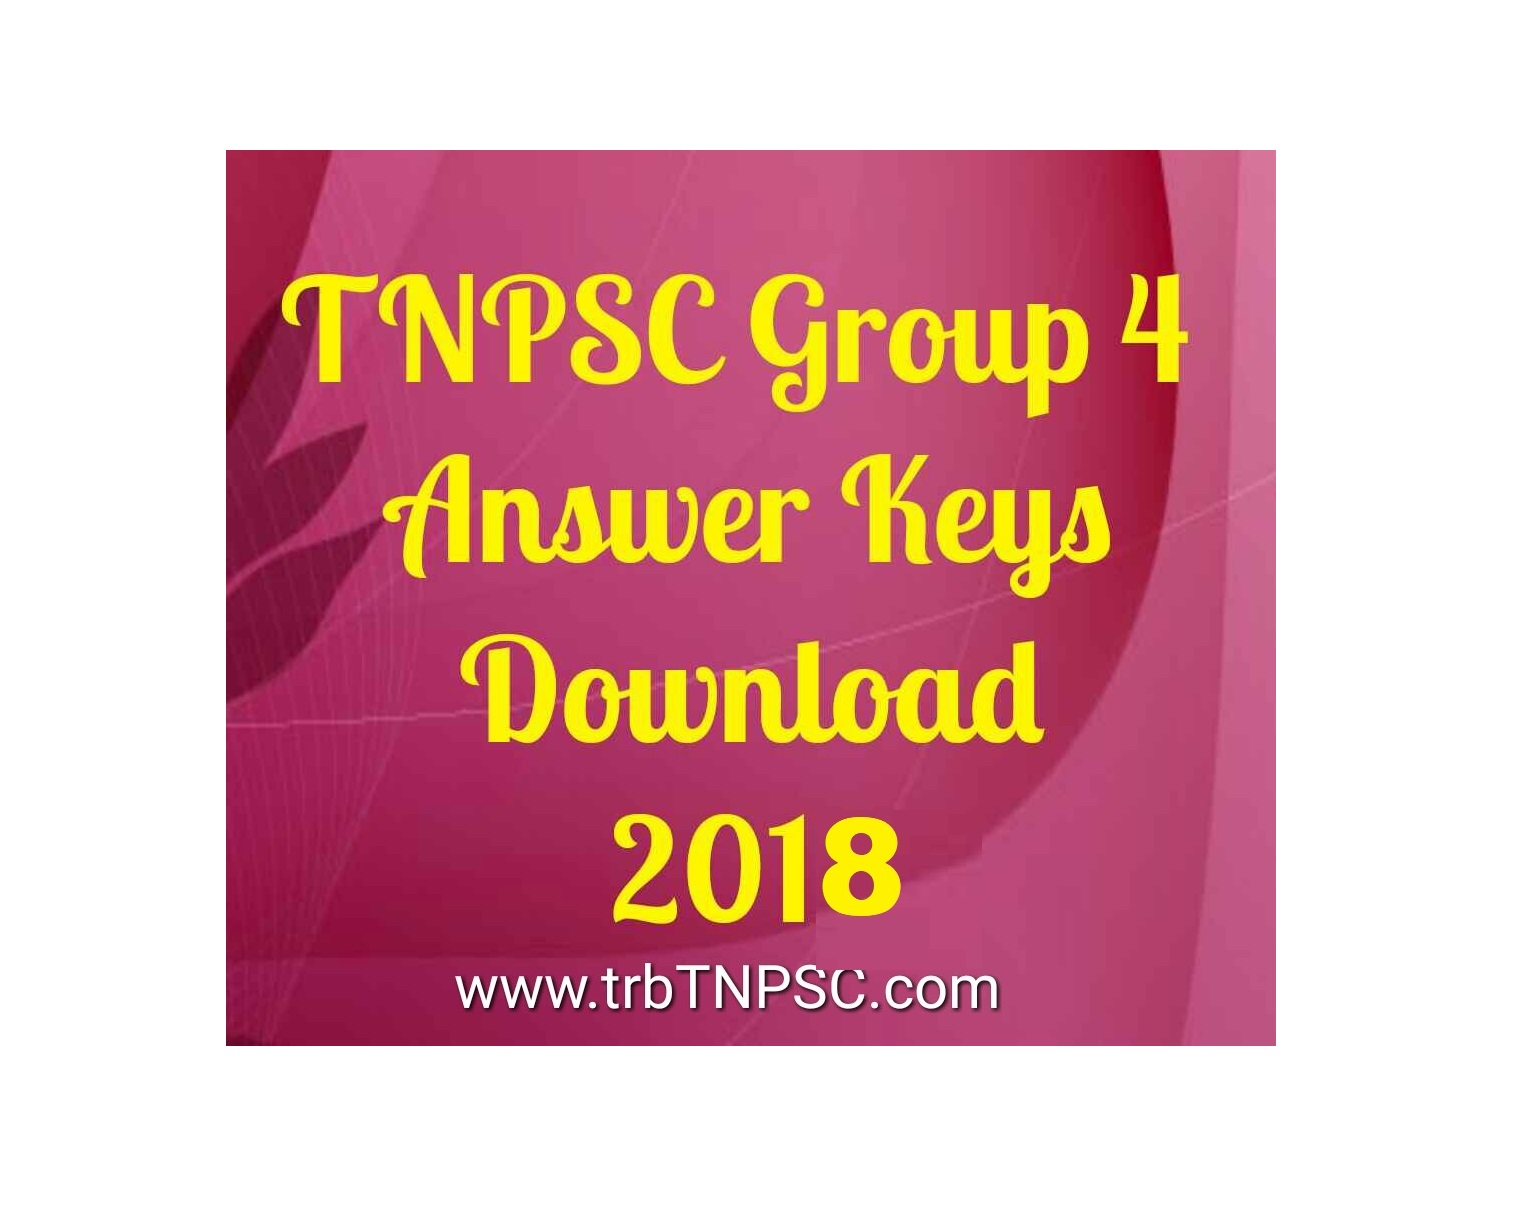 Tnpsc Group 4 Study Material In Tamil Pdf 2014